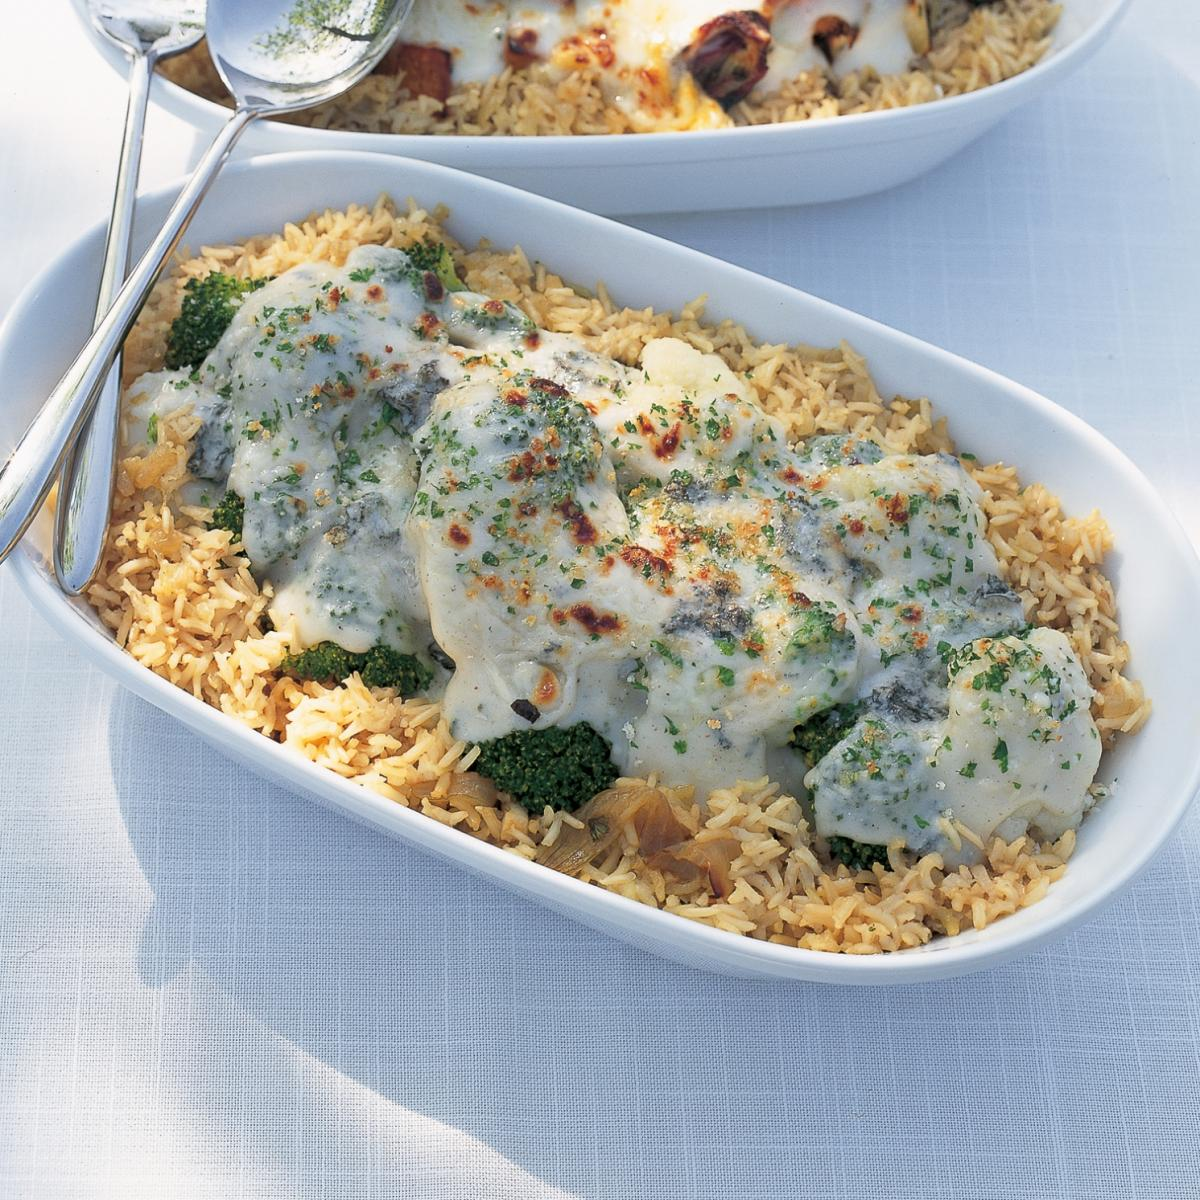 Cauliflower and Broccoli Gratin with Blue Cheese | Recipes ...